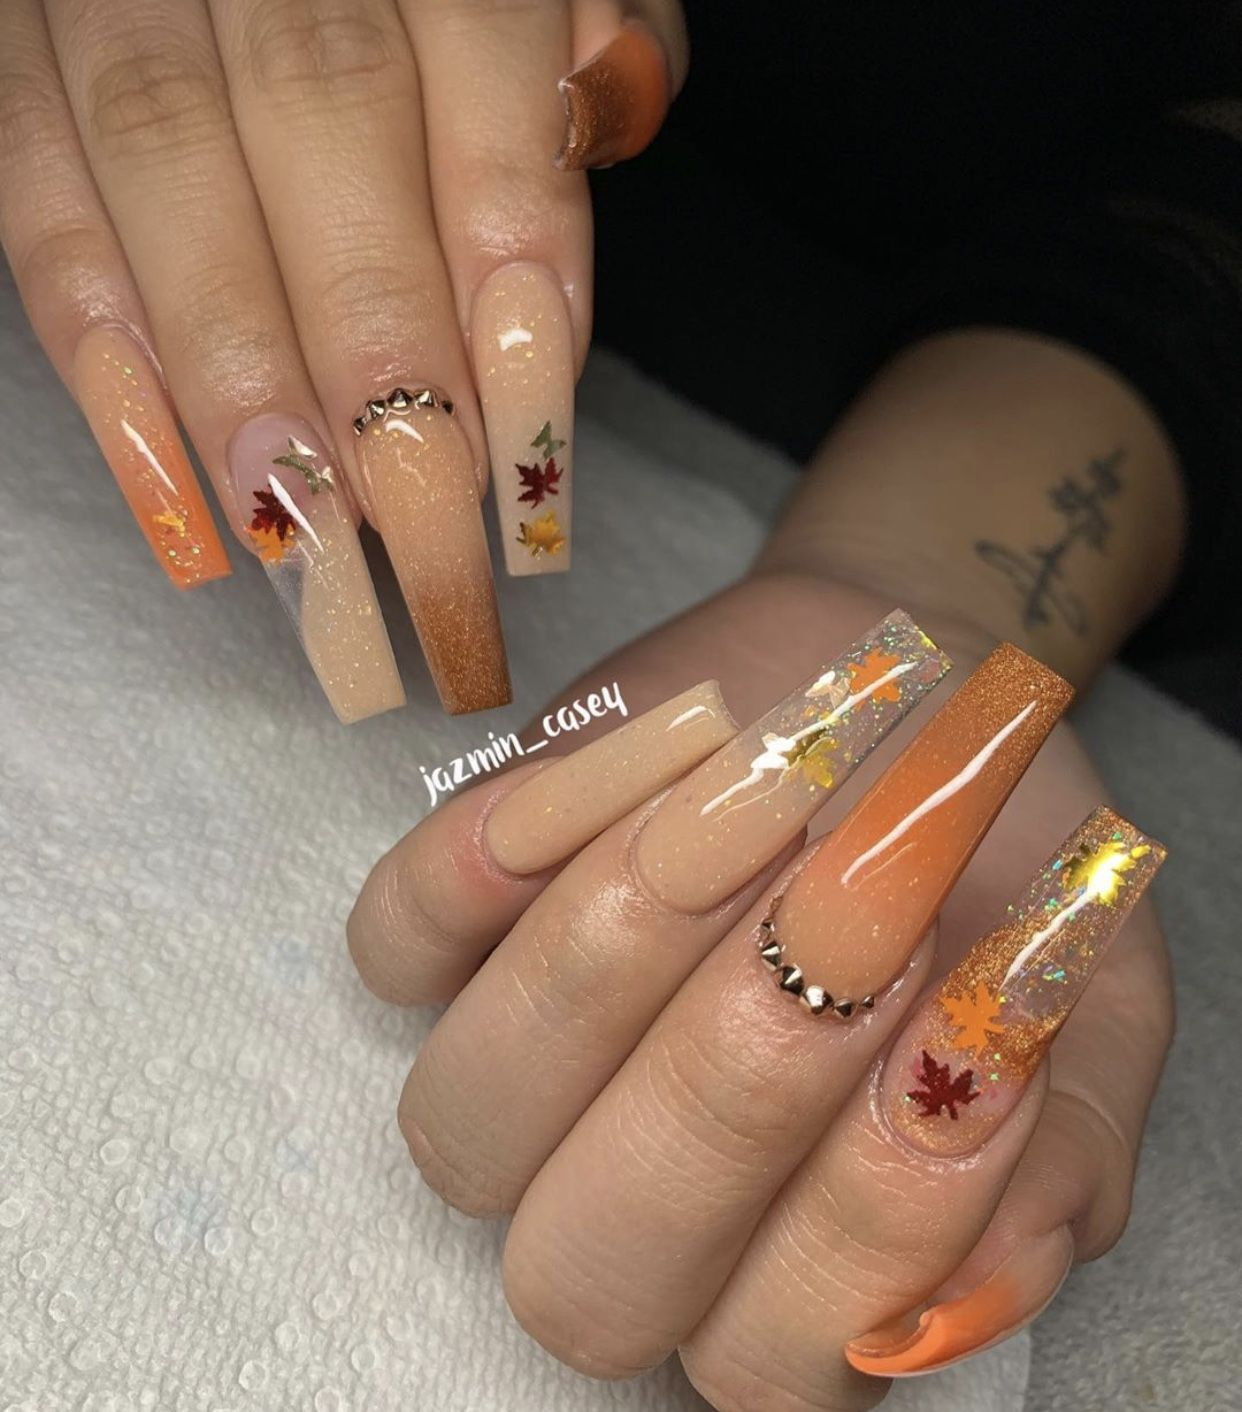 Fall Acrylic Nails Ideas Orange Gold And Tan Coffin Nails With Leaves And Rhinestones In 2020 Fall Acrylic Nails Coffin Nails Designs Long Acrylic Nails